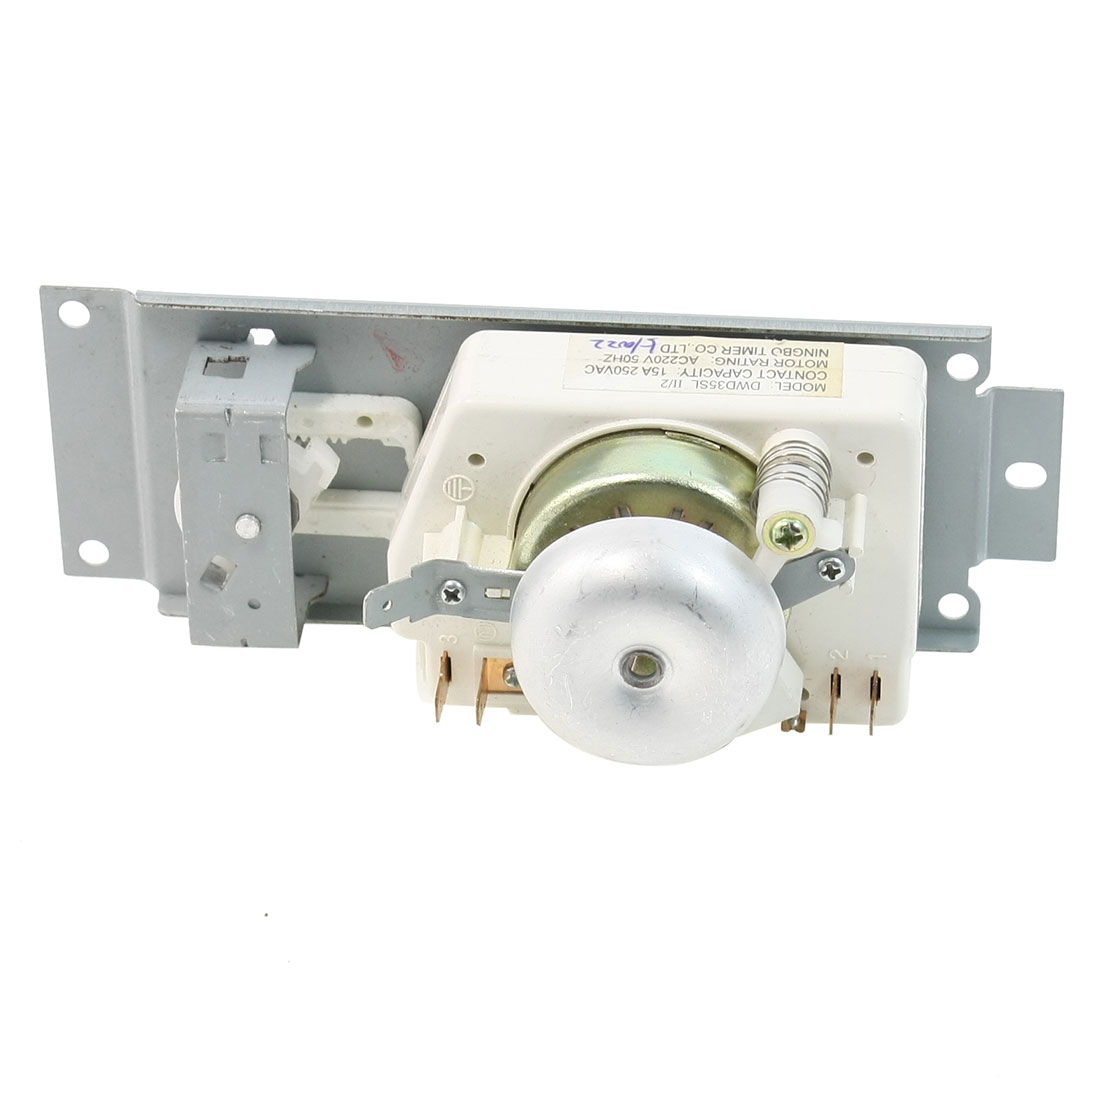 AC 220-240V Motor Repair Part 30 Minutes Timer Control for Media Microwave Oven